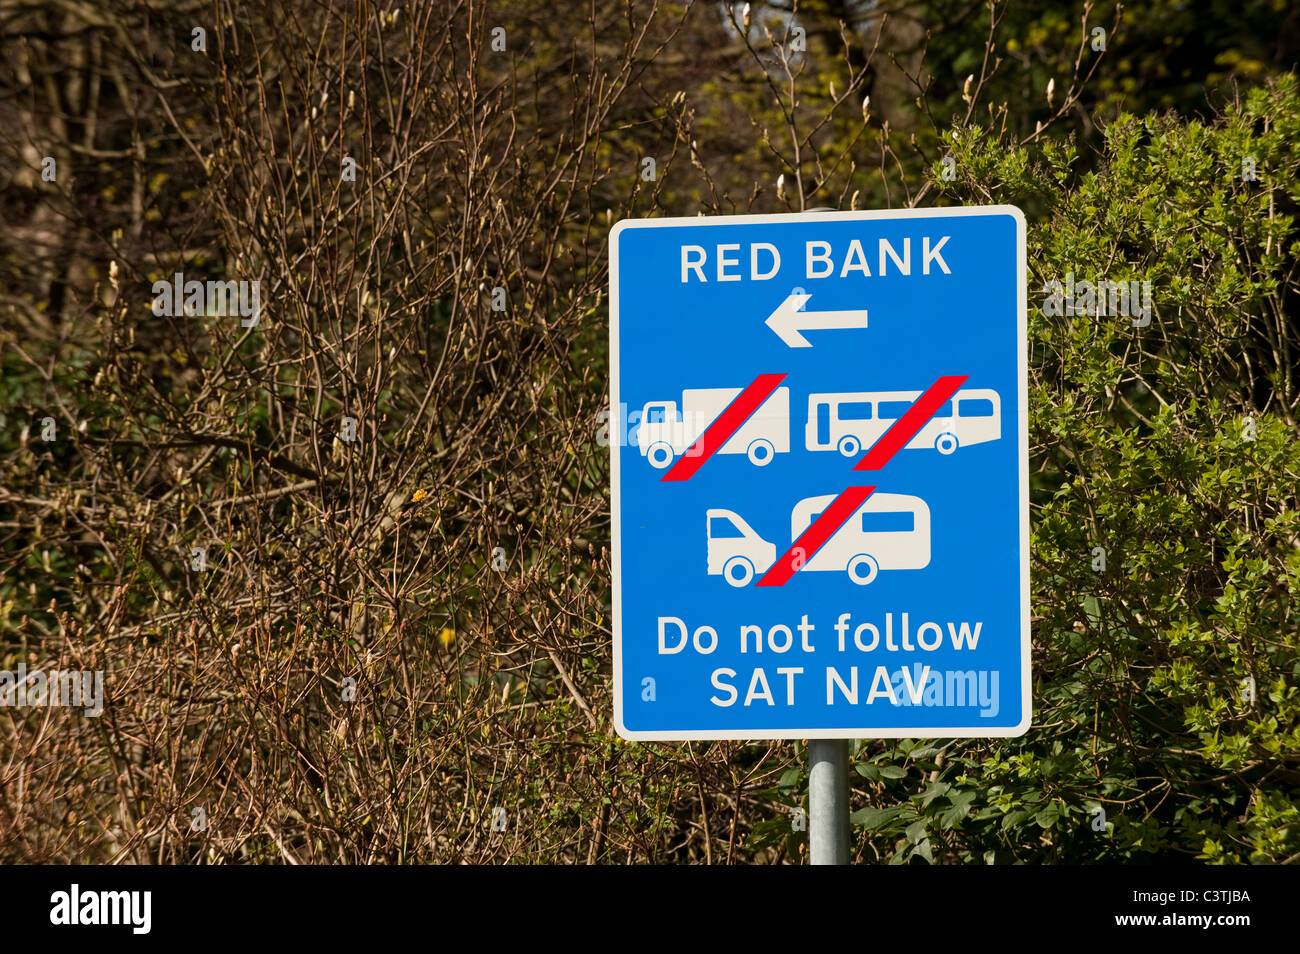 Sign on narrow road warning drivers not to follow satallite Navigation system - Stock Image